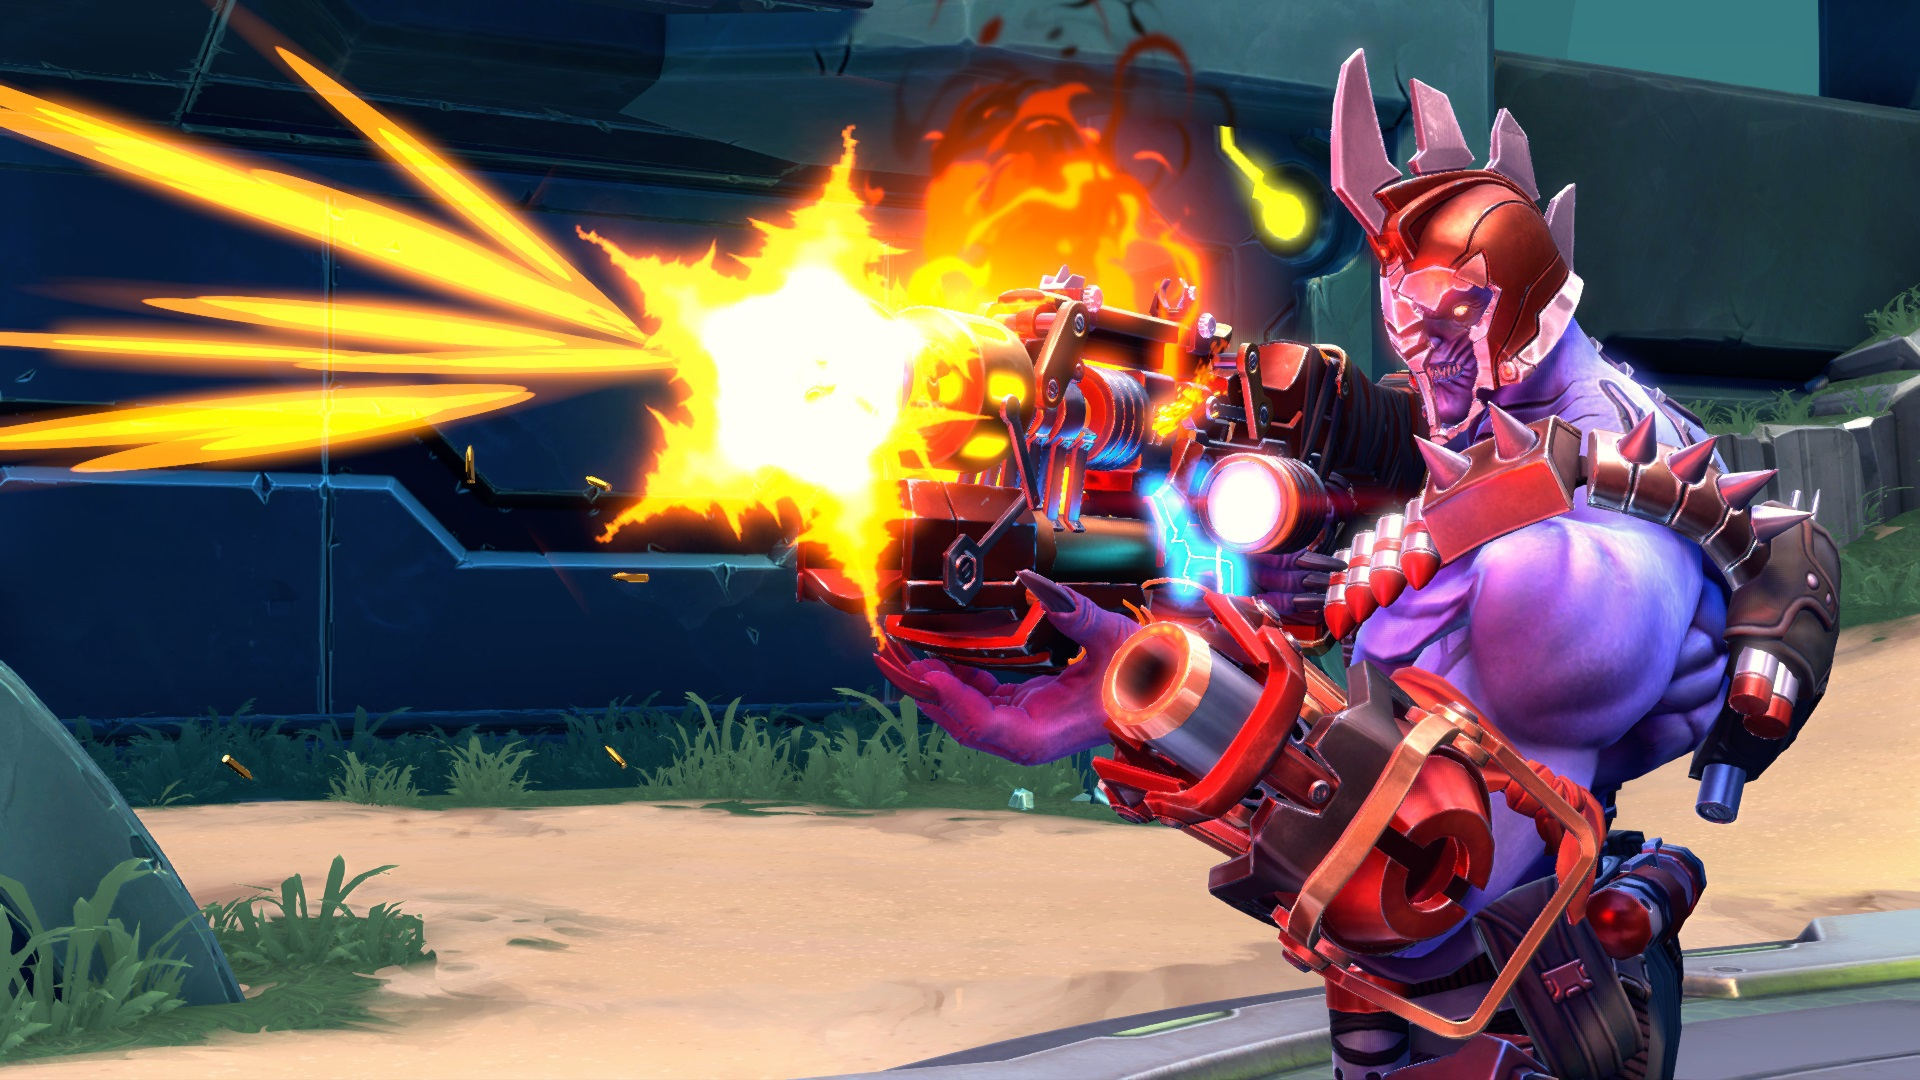 battleborn wallpapers images photos pictures backgrounds